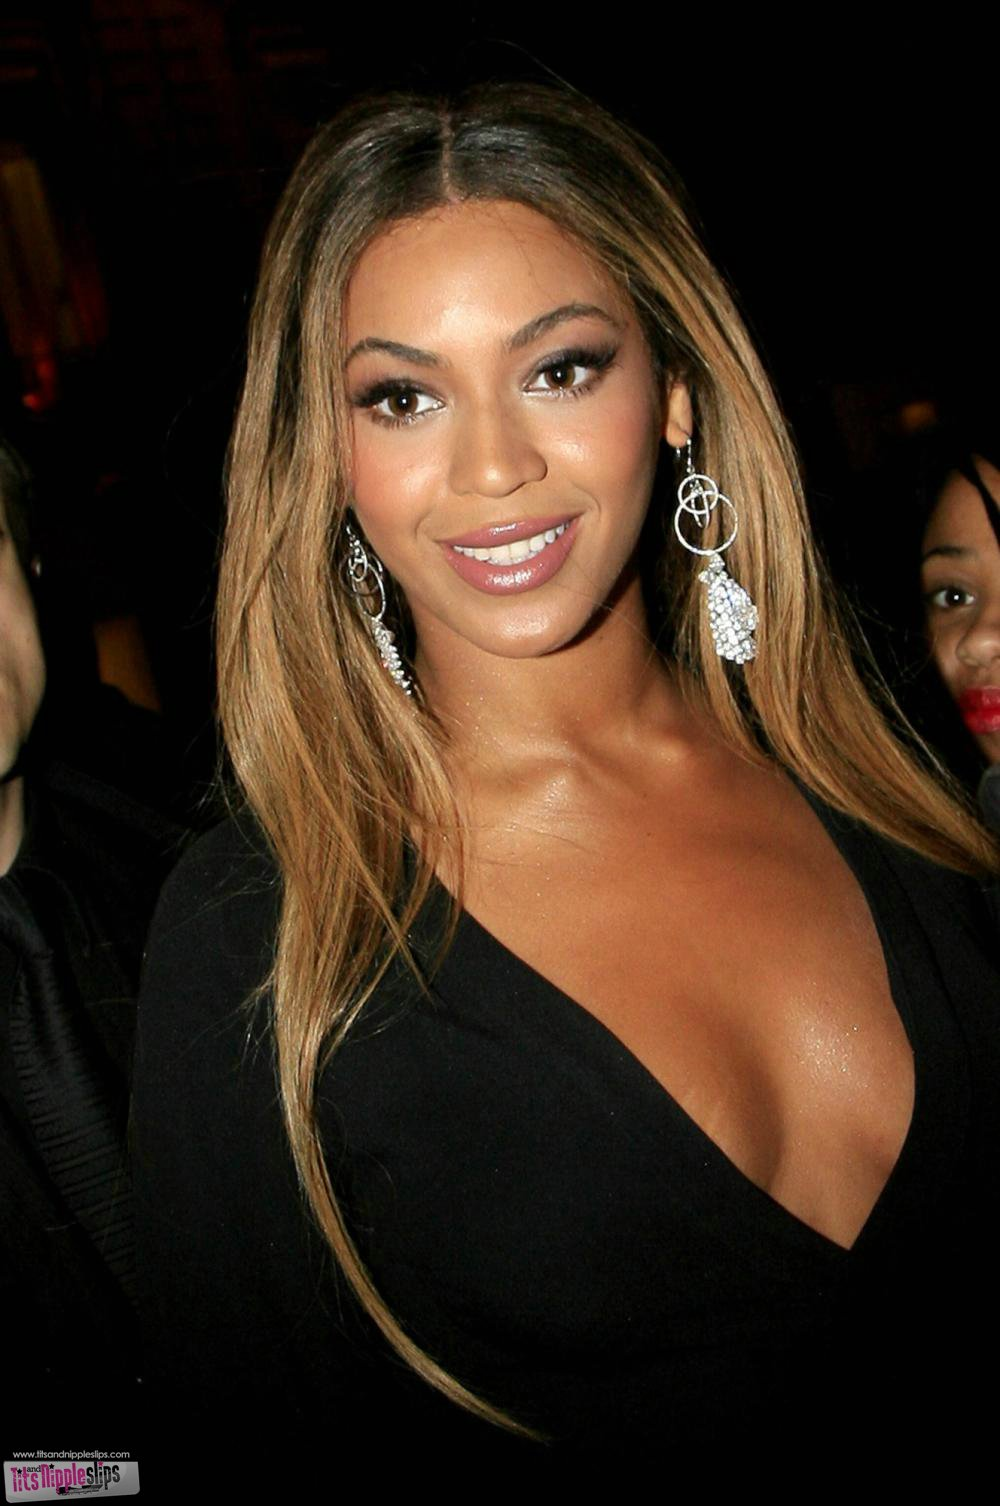 beyonce knowles Hello, its beyonce' world humanitarian day is 4 days away august 19th what will your act of kindness be #iwashere #whd2012.